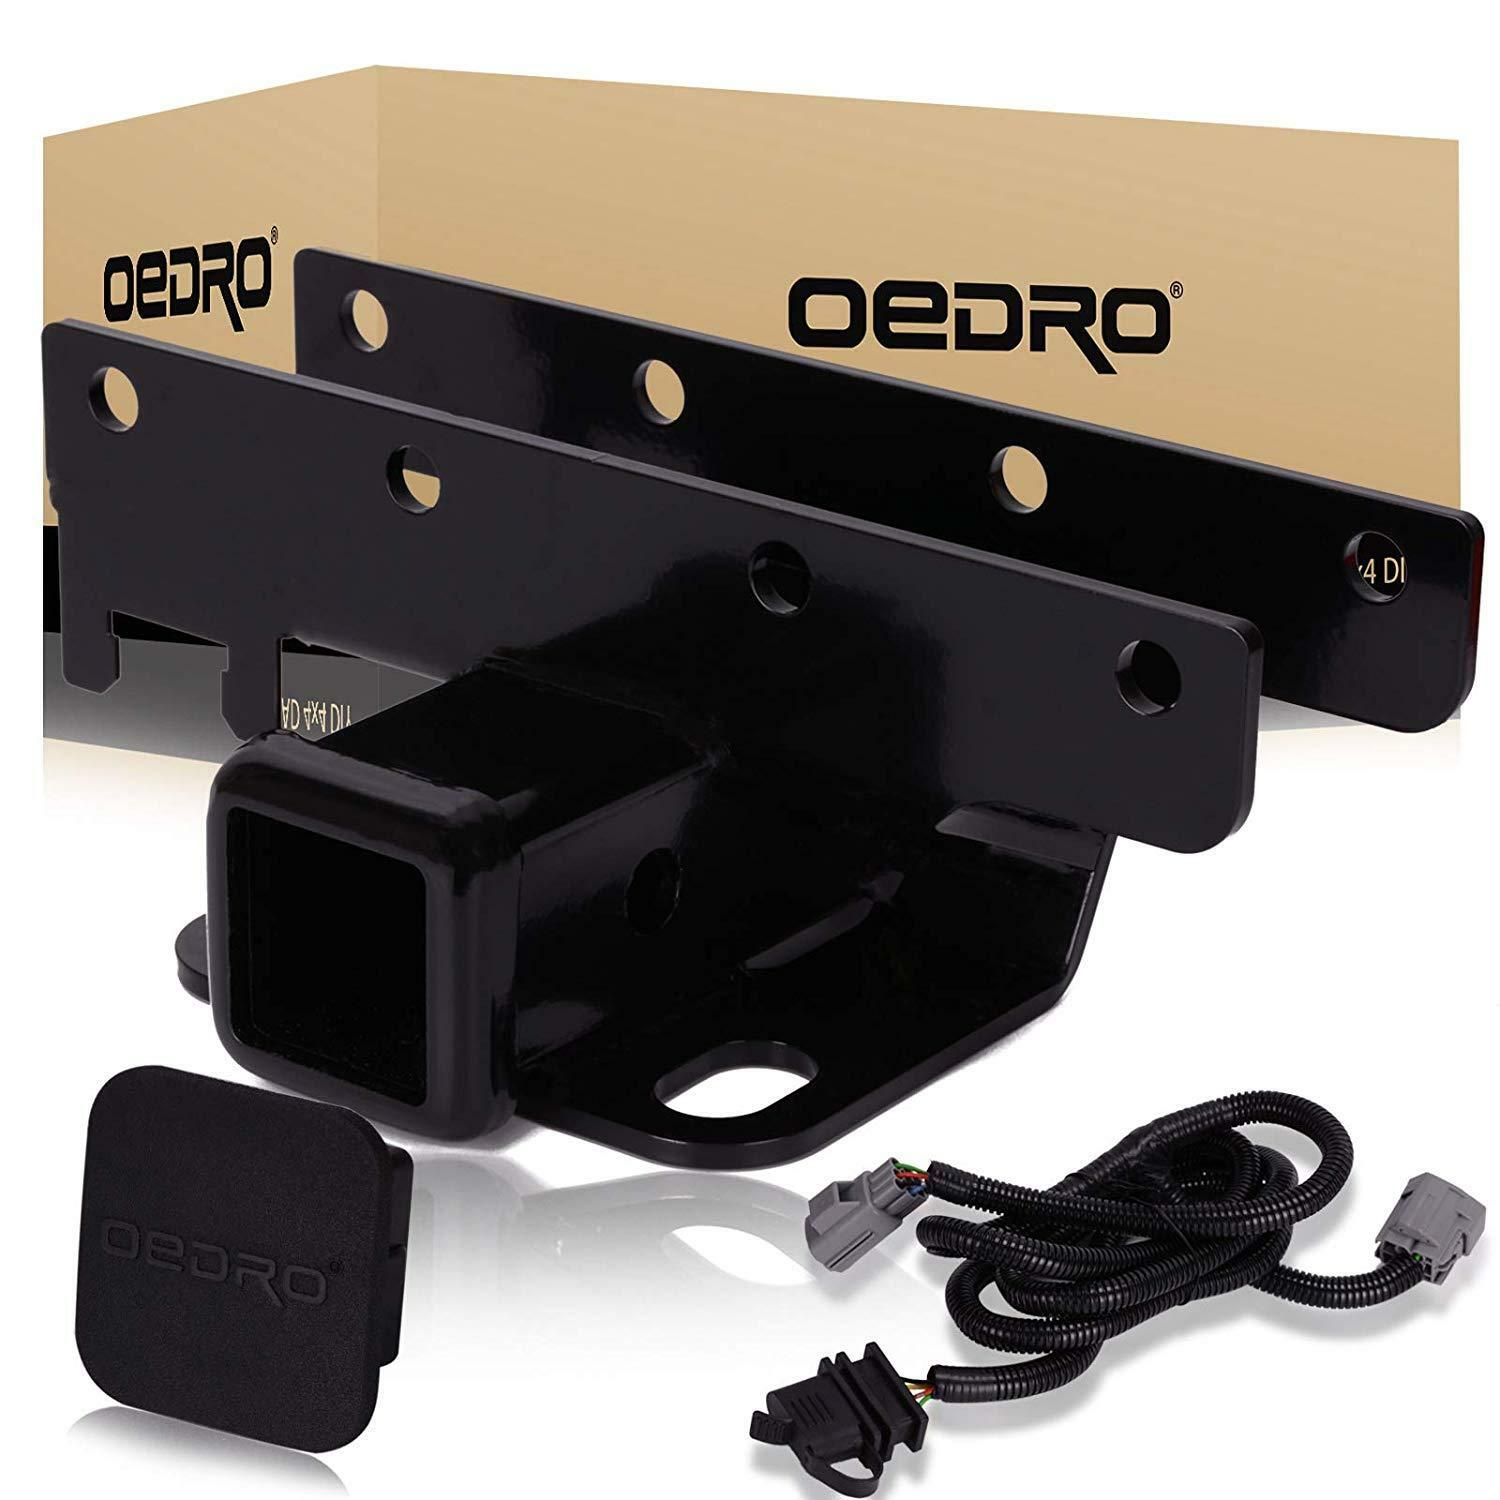 OEDRO 2 inch Rear Bumper Trailer Hitch Receiver Kit ... on jeep xj wiring harness, 1995 jeep wiring harness, jeep liberty wiring harness, jeep wrangler trailer wiring, mazda wiring harness, jeep wk wiring harness, jeep wrangler wiring diagram, jeep wrangler wiring harness connectors, nissan wiring harness, radio wiring harness, dodge wiring harness, fj cruiser wiring harness, ford wiring harness, jeep cj wiring harness, jeep commander wiring harness, jeep tow wiring harness, jeep wrangler aftermarket stereo, toyota wiring harness, jeep trailer wiring harnesses, jeep cj7 wiring-diagram,